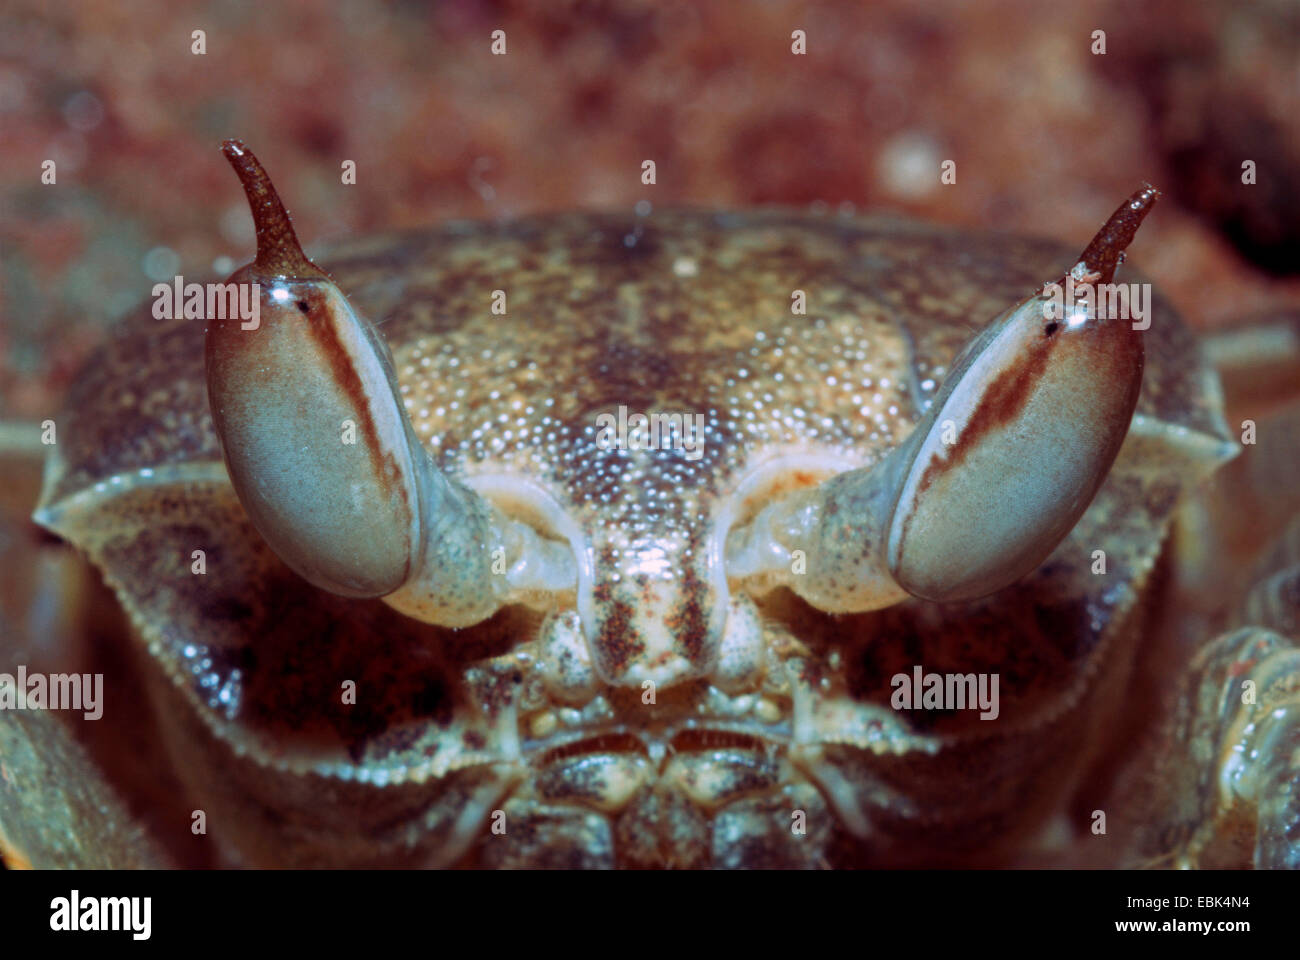 Indo-Pacific ghost crab, horn-eyed ghost crab (Ocypode ceratophthalma), portrait - Stock Image